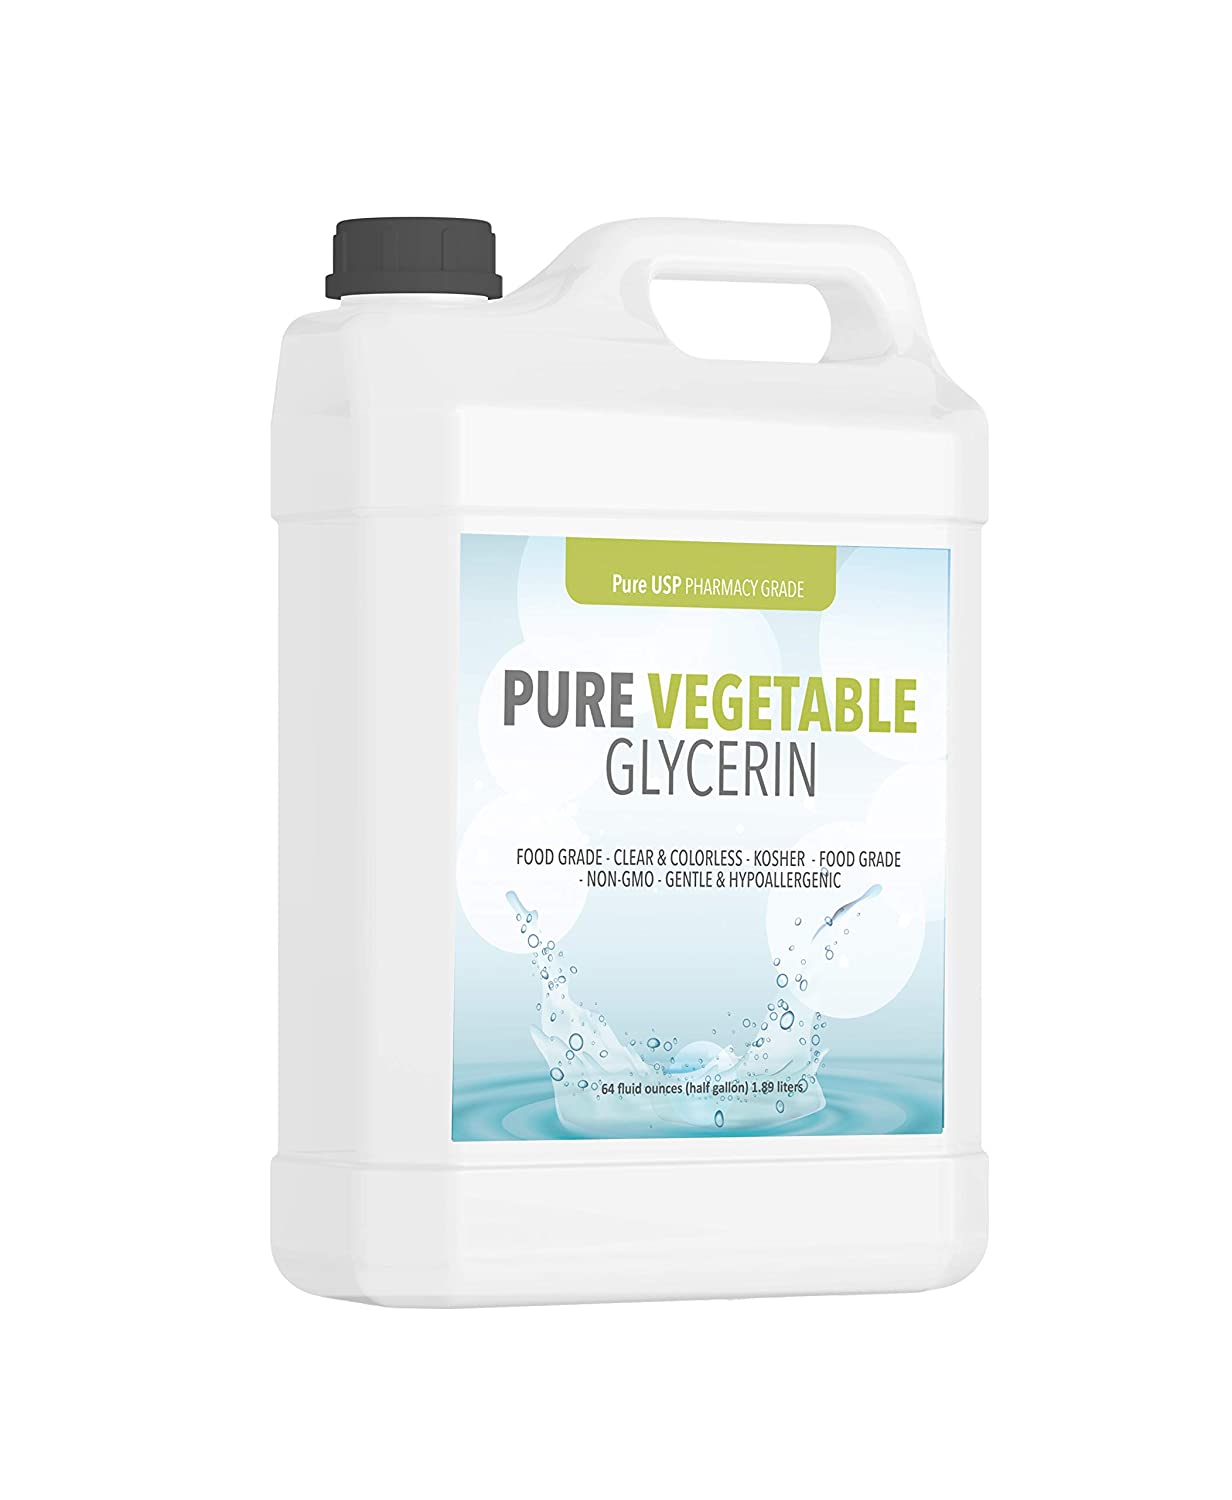 Vegetable Glycerin Half Gallon (64 oz.) by Pure Organic Ingredients, Kosher, Vegan, Food & USP Pharmaceutical Grade